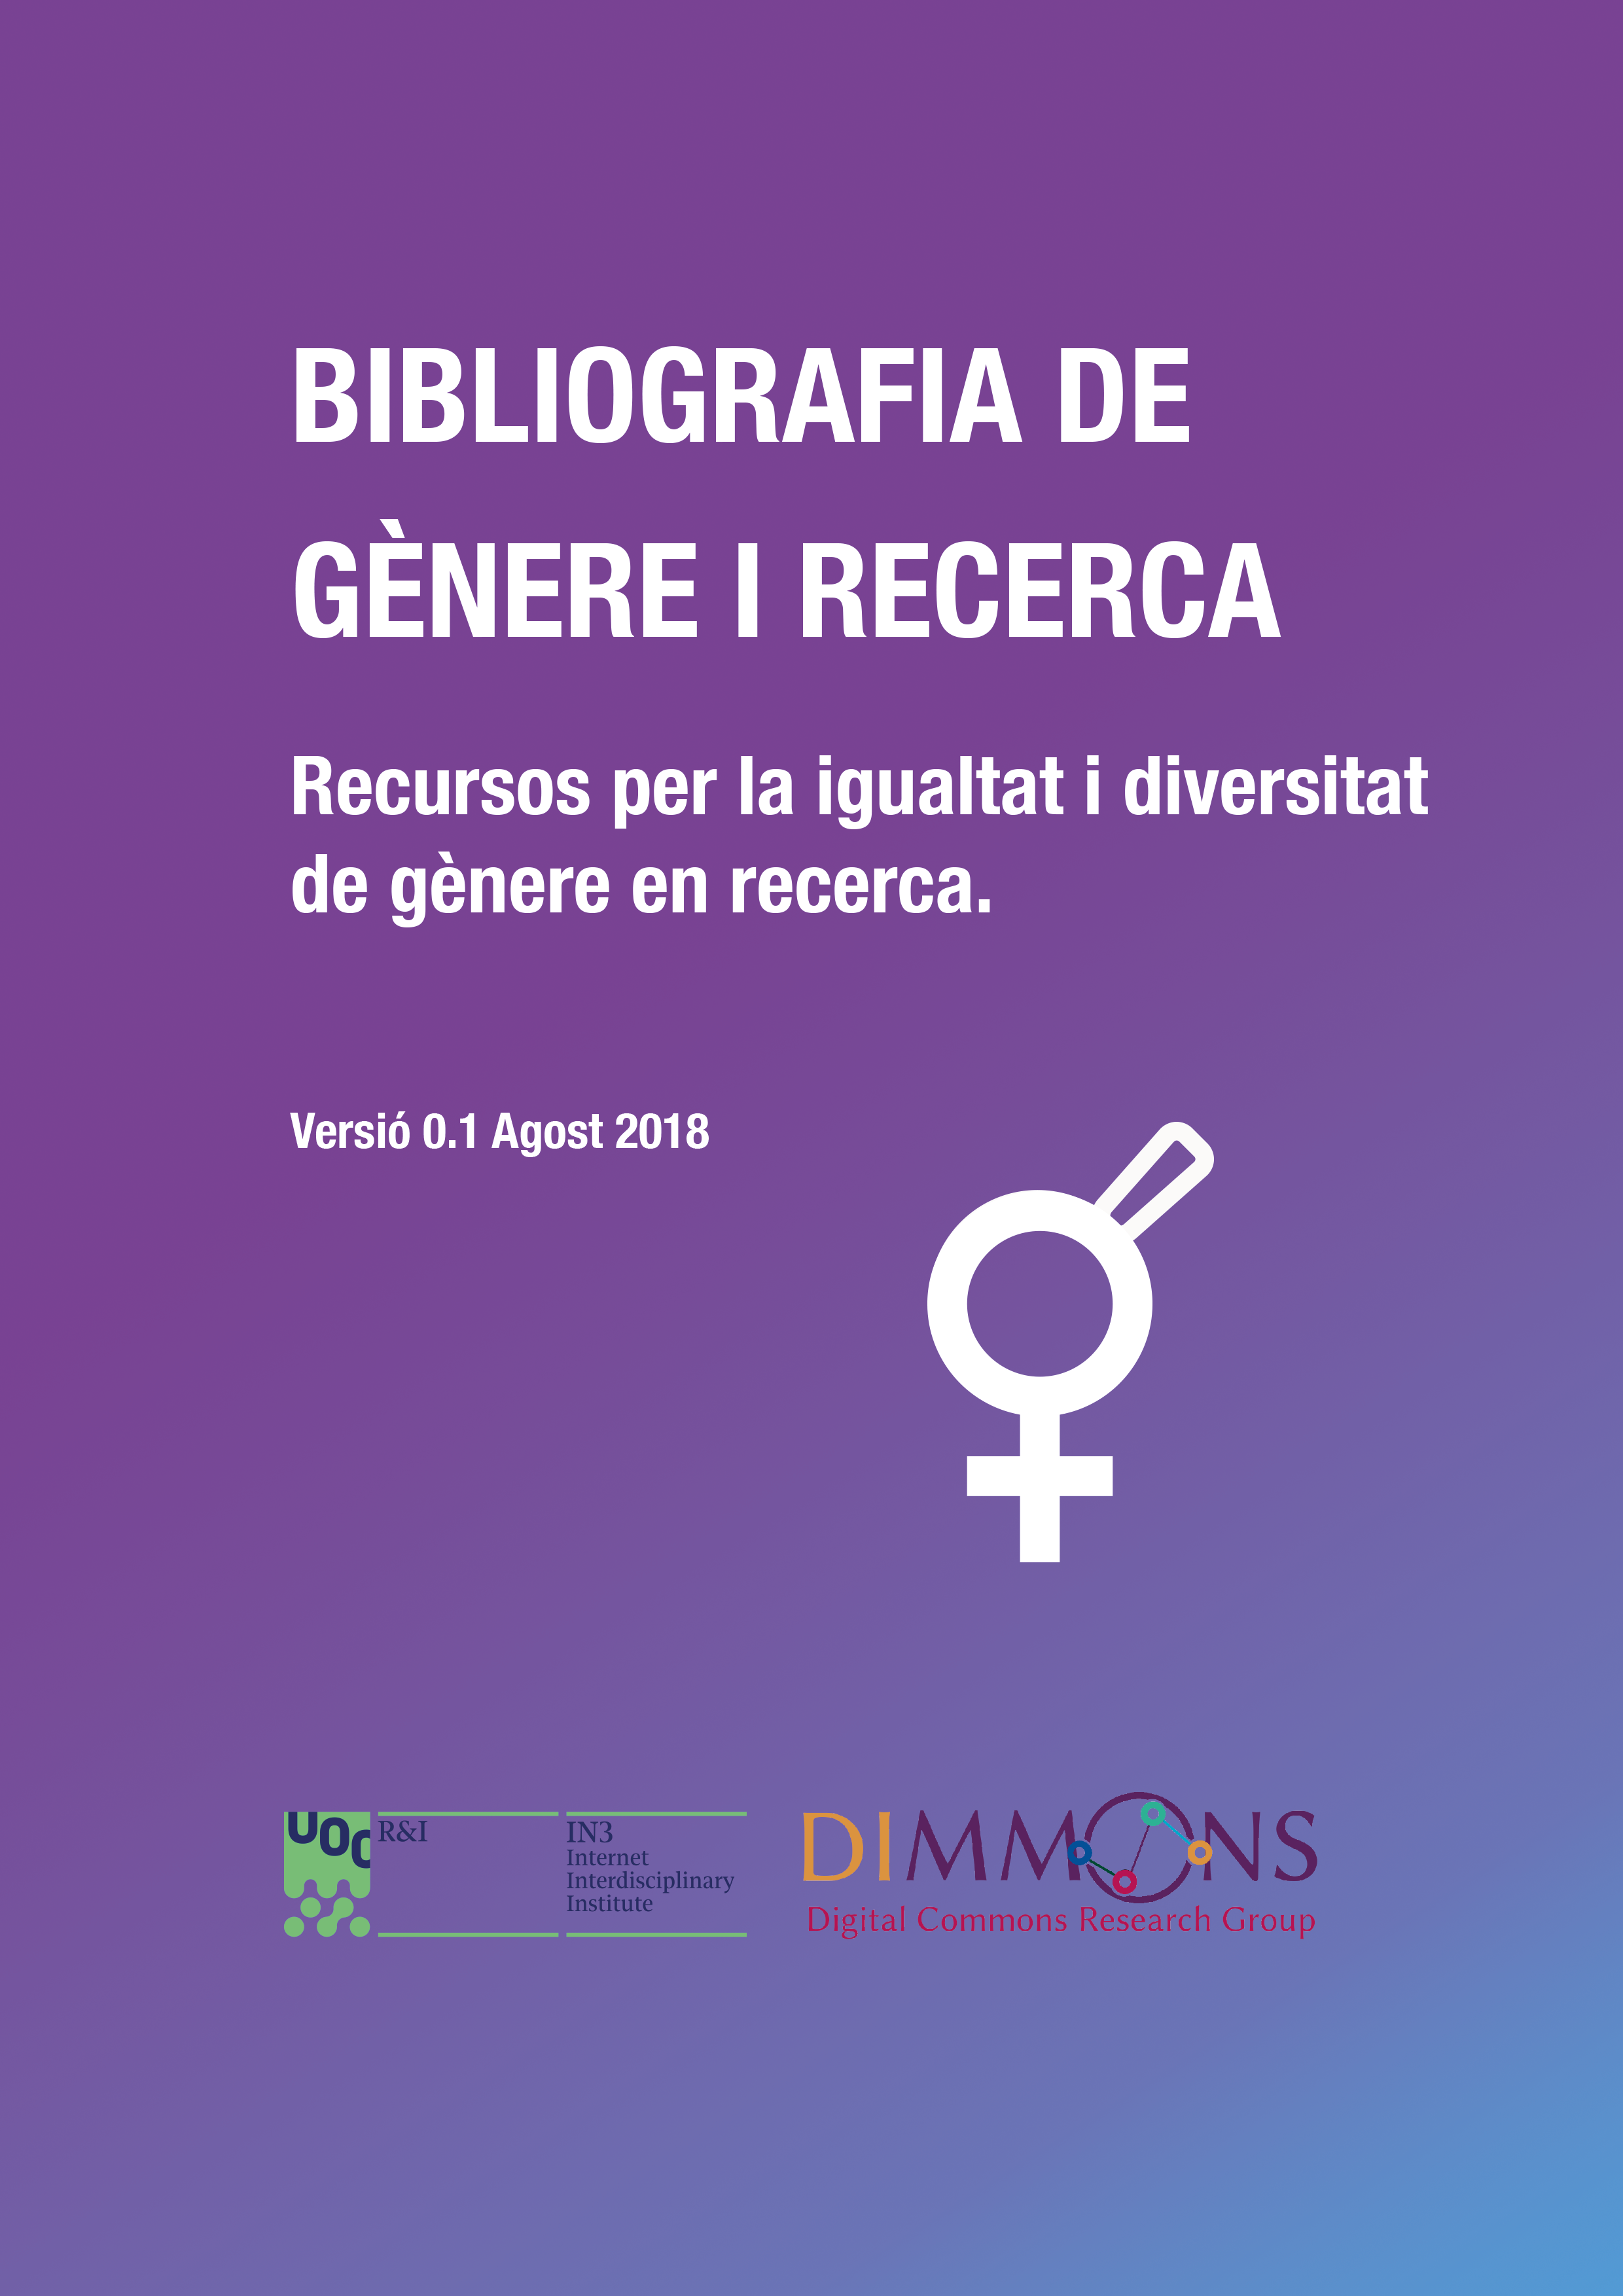 portada genere2 Bibliography of Gender and Research